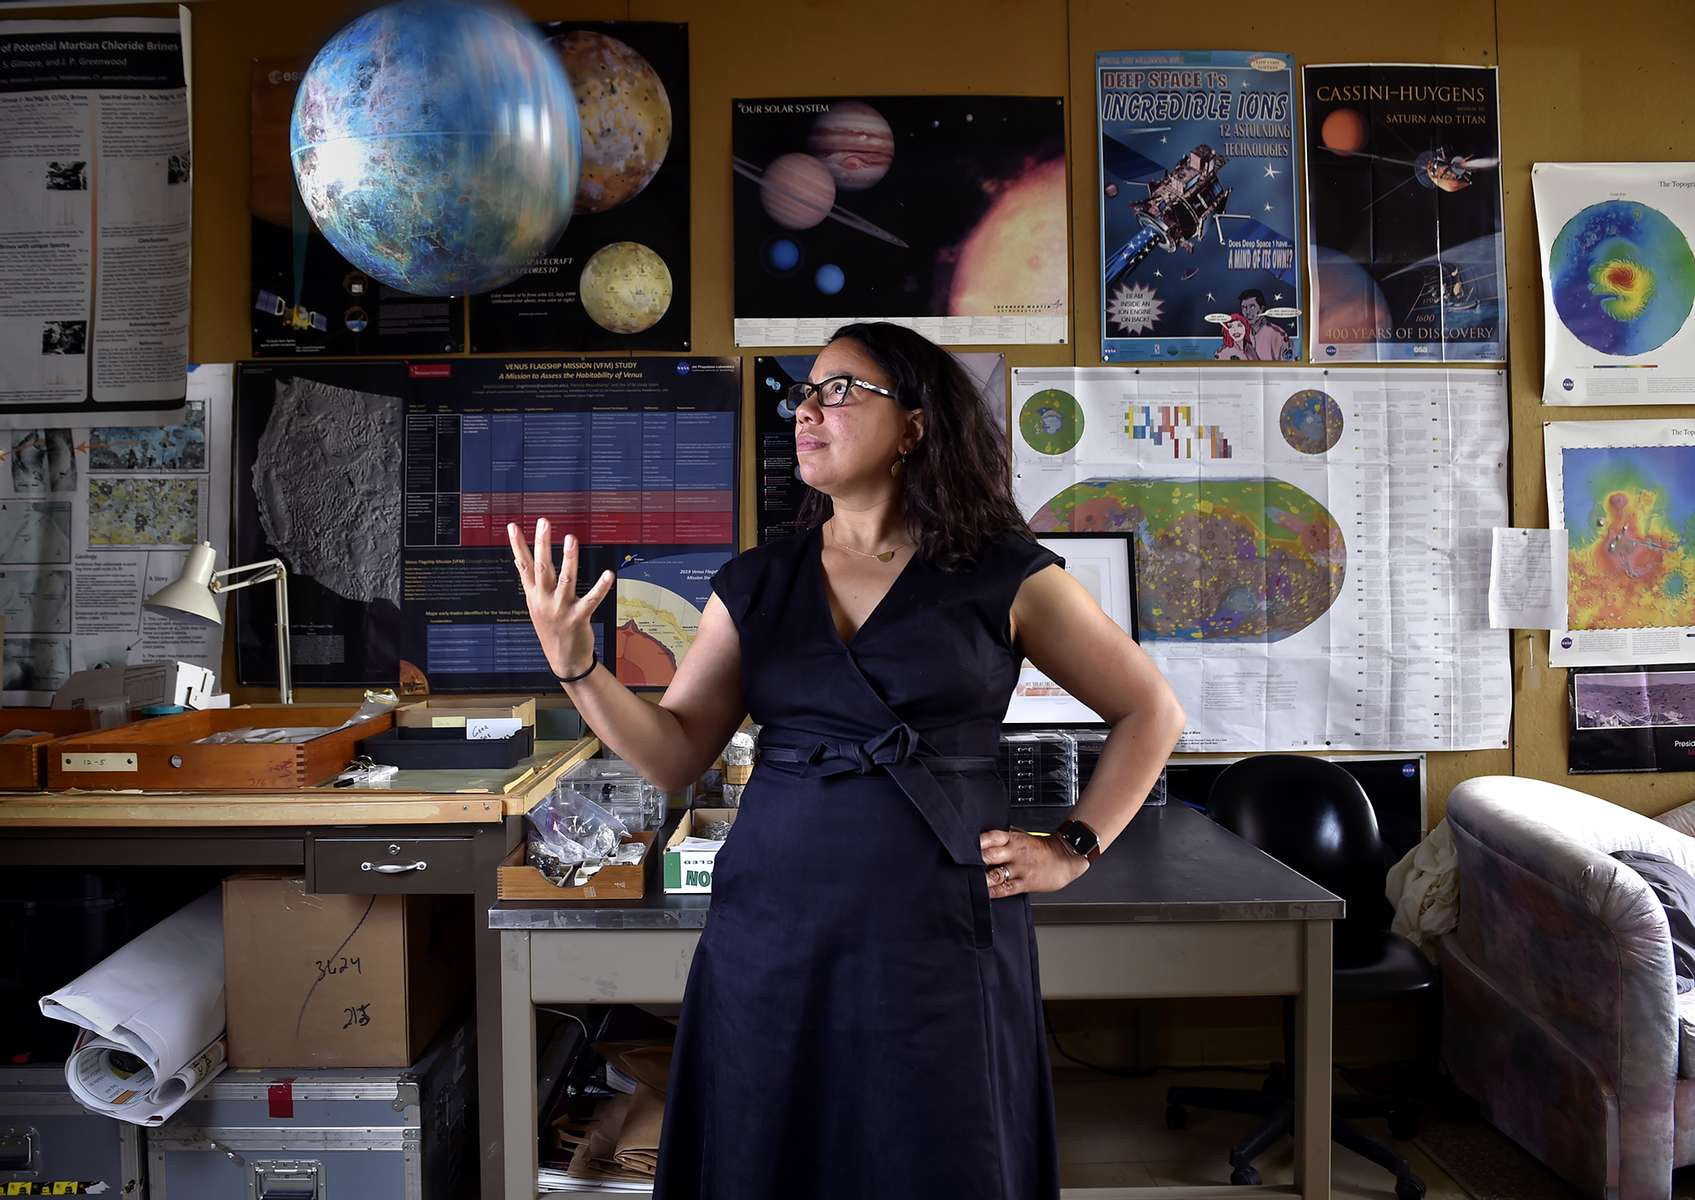 Middletown, CT - 6/4/21 - Two projects by Wesleyan University professor Martha S. Gilmore, have been selected as NASA missions related to Venus. Photo by Brad Horrigan | bhorrigan@courant.com